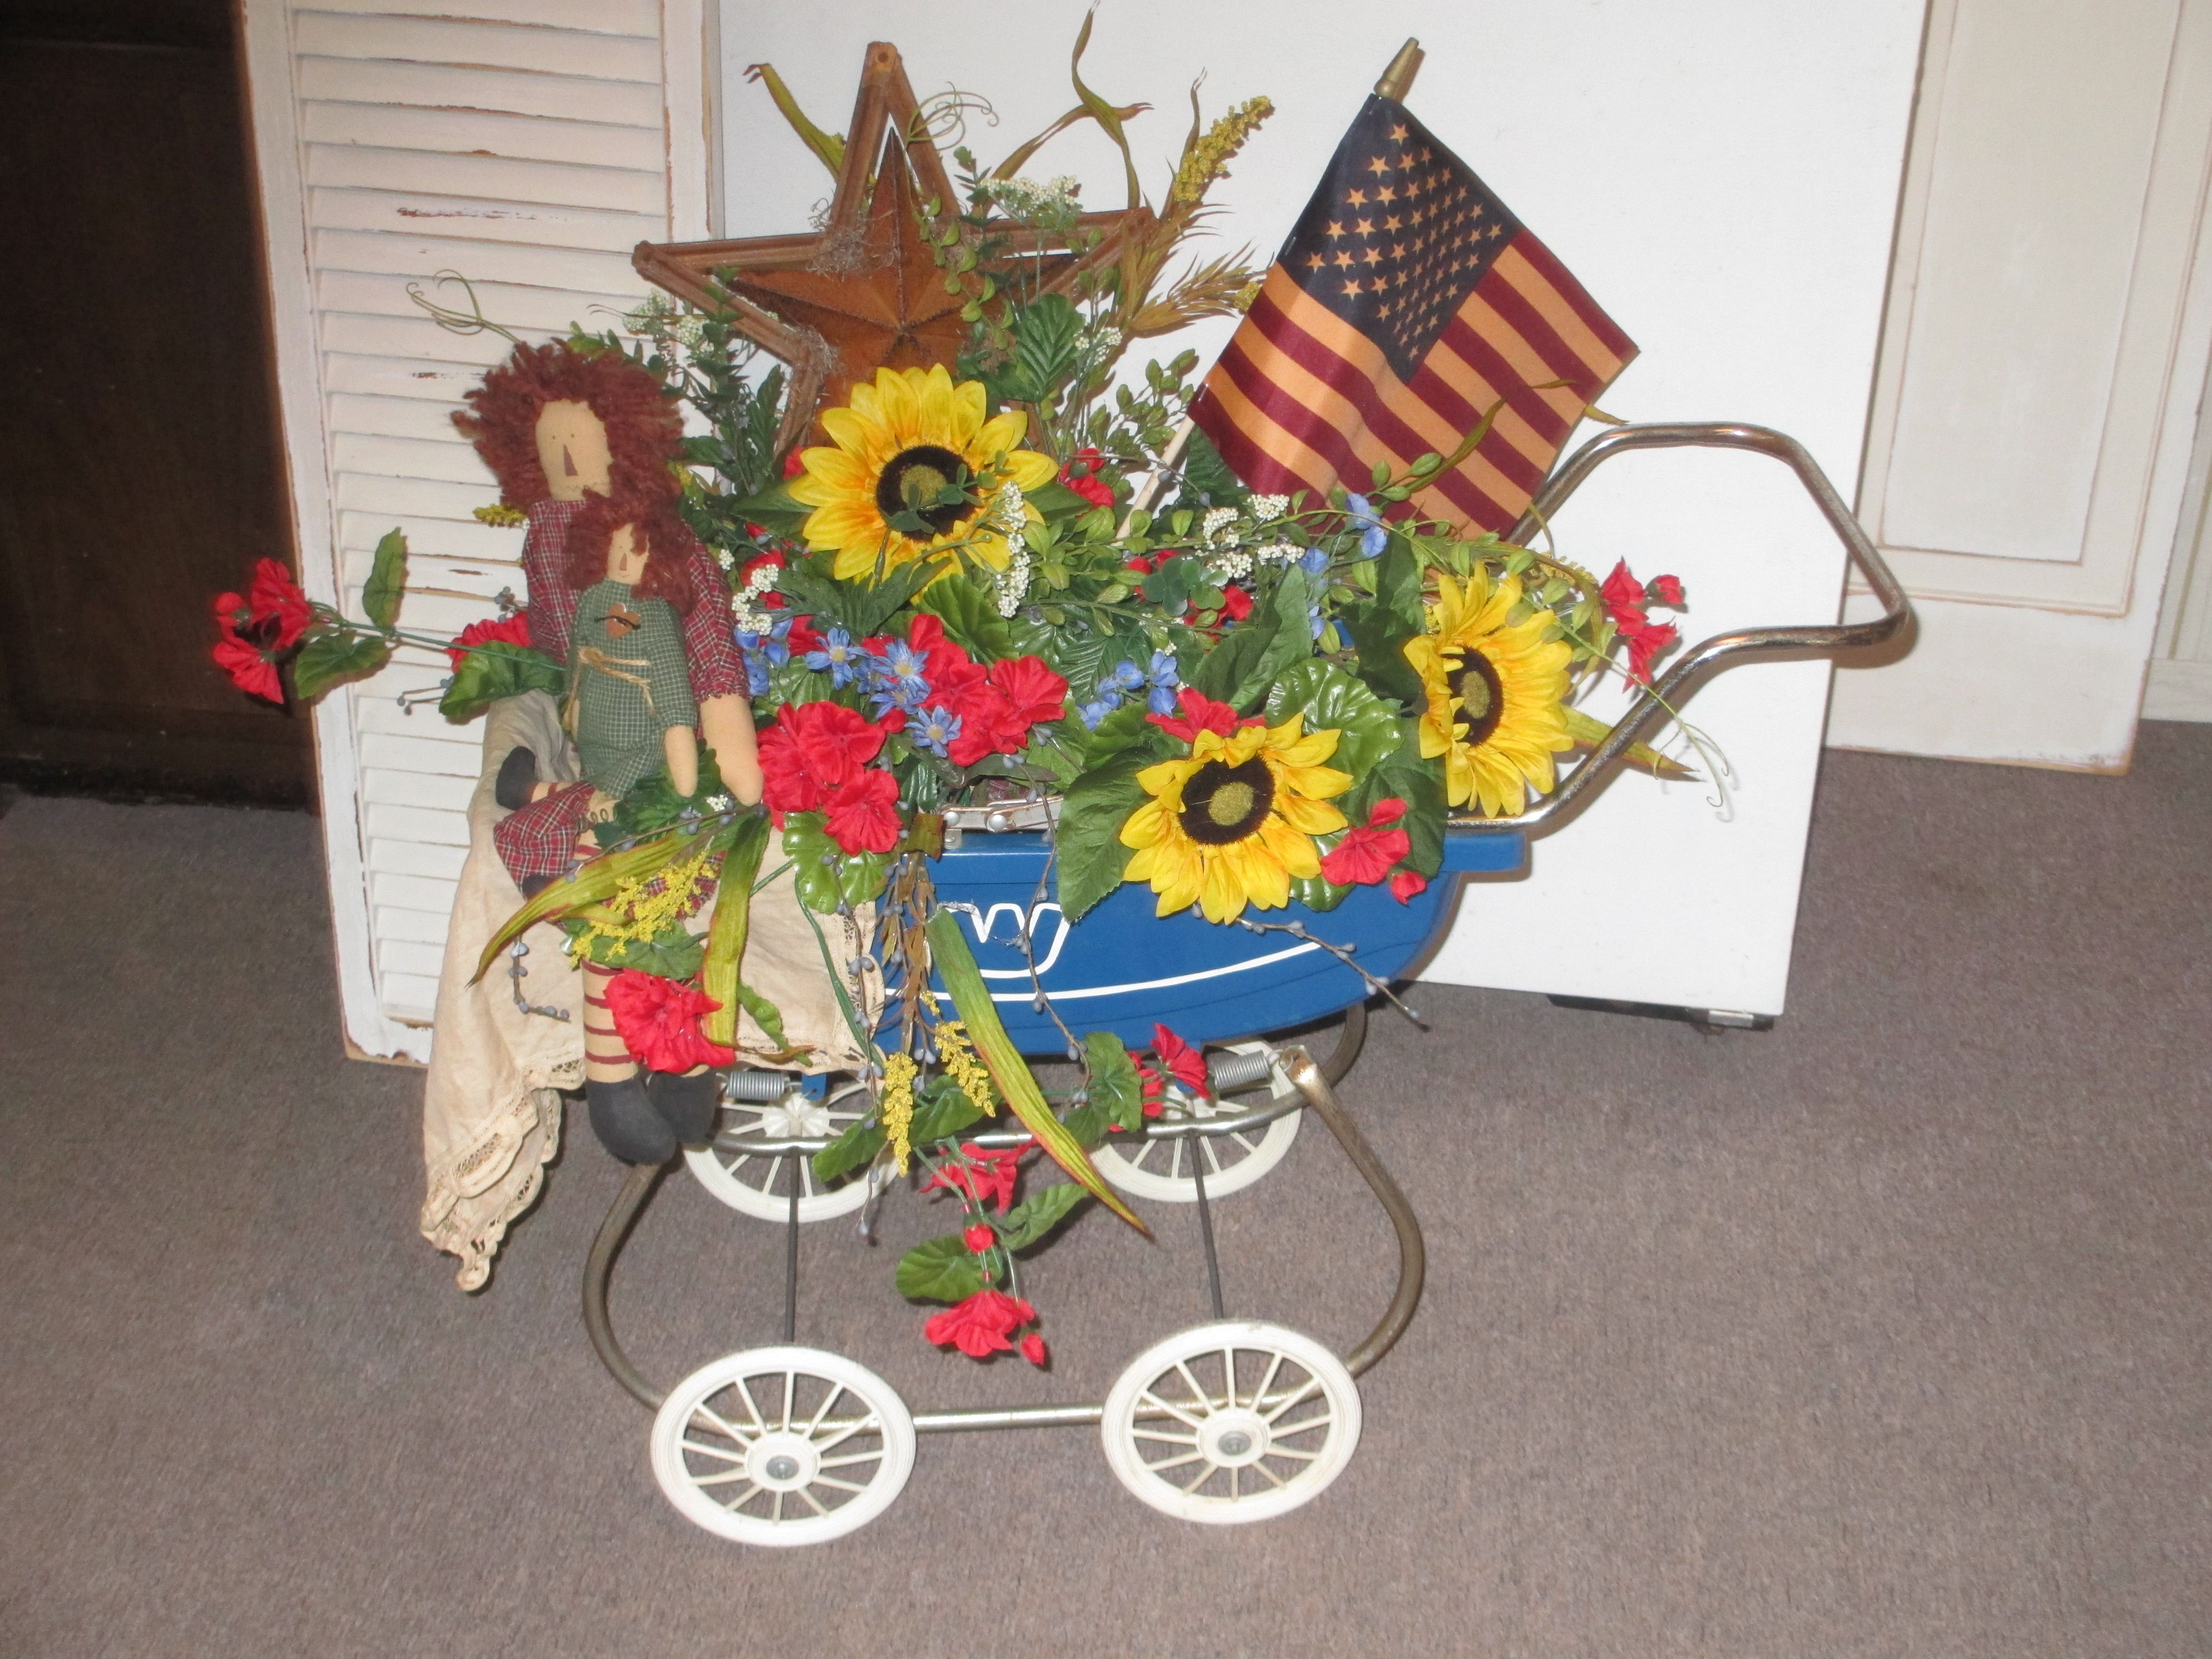 by Joan Larson, doll buggy with added floral, star & flag now a summer display